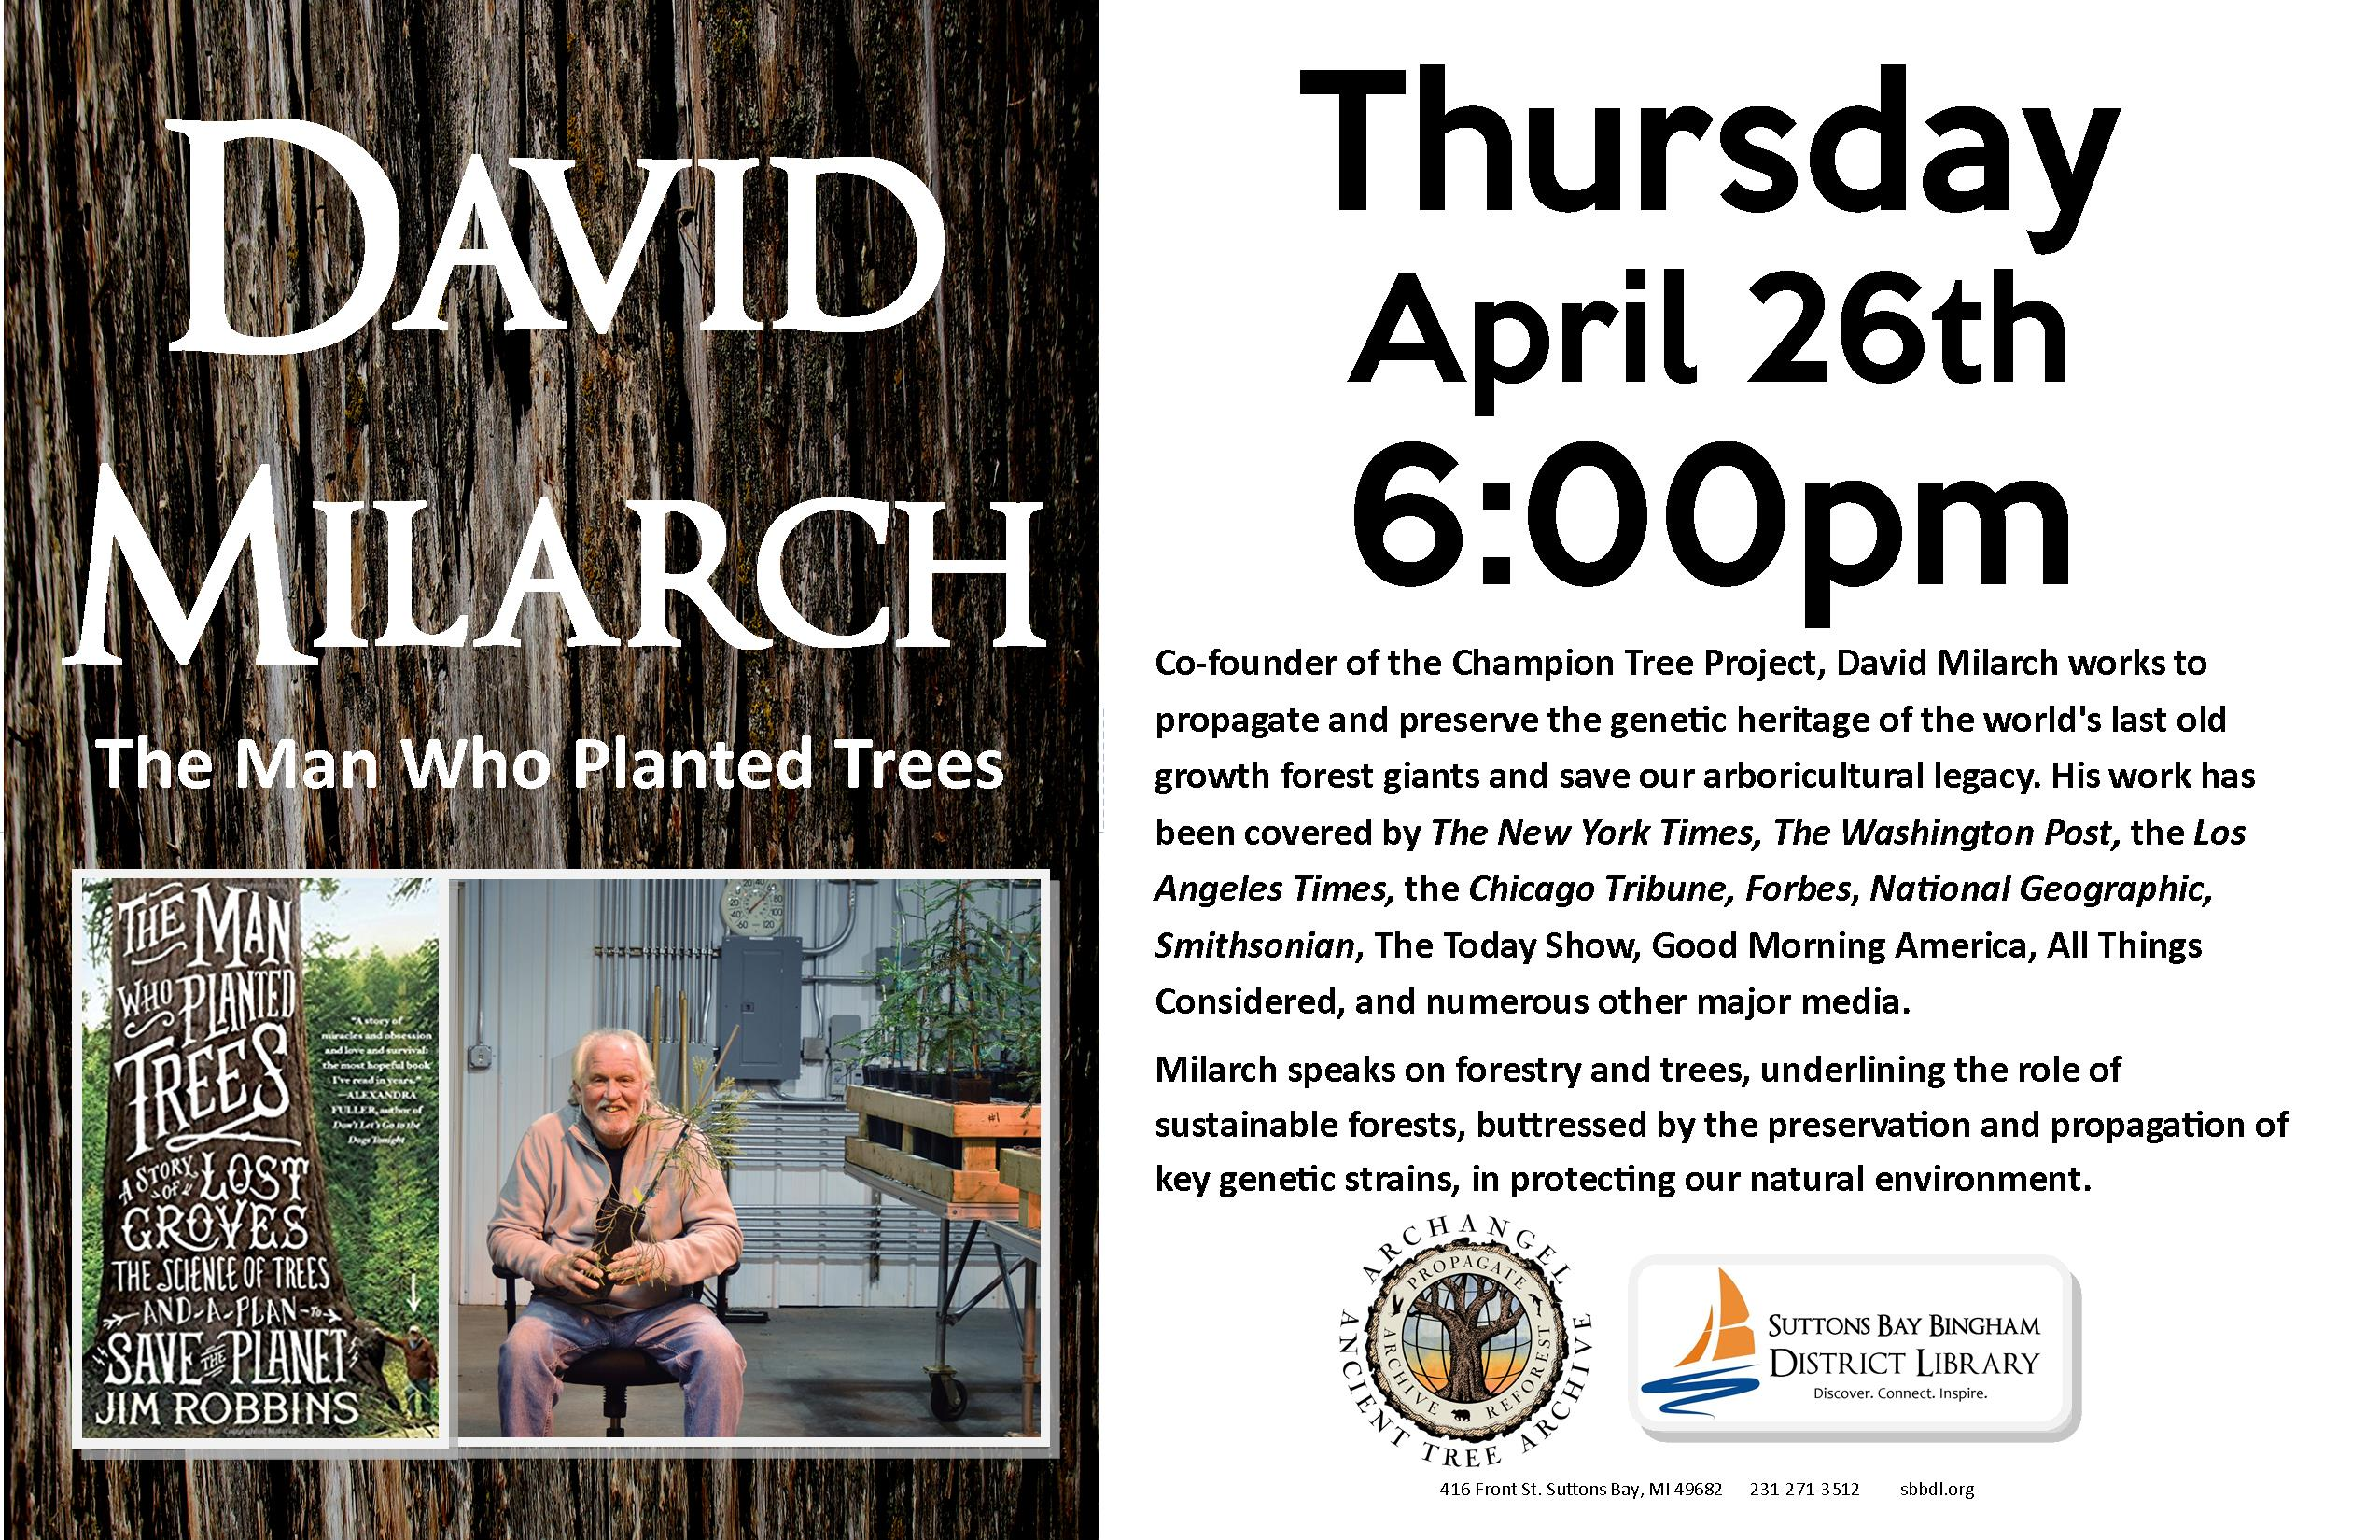 David Milarch The Man Who Planted Trees Suttons Bay